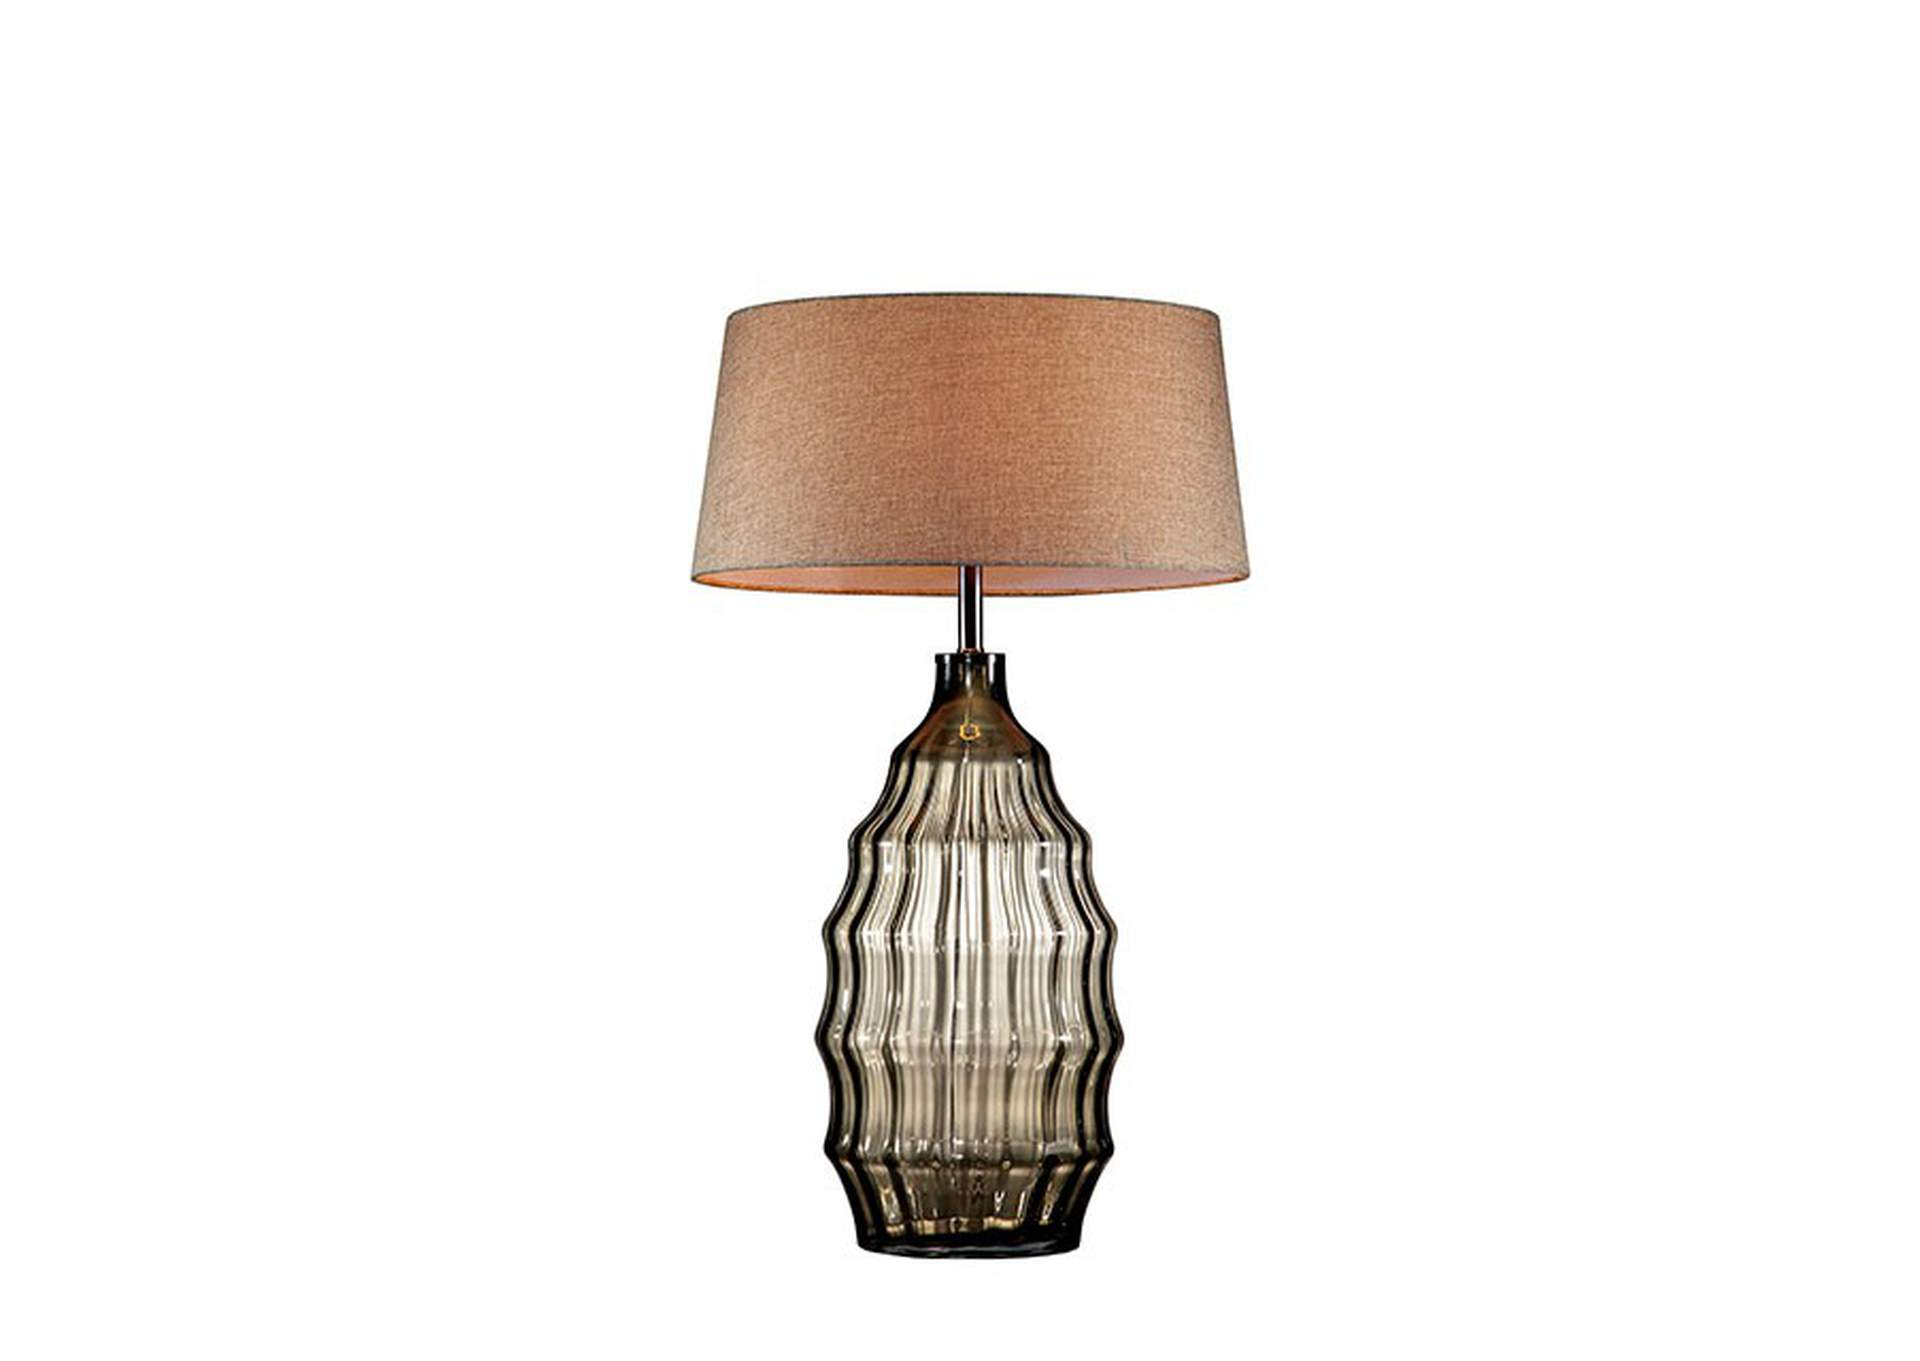 Elen Olive Table Lamp,Furniture of America